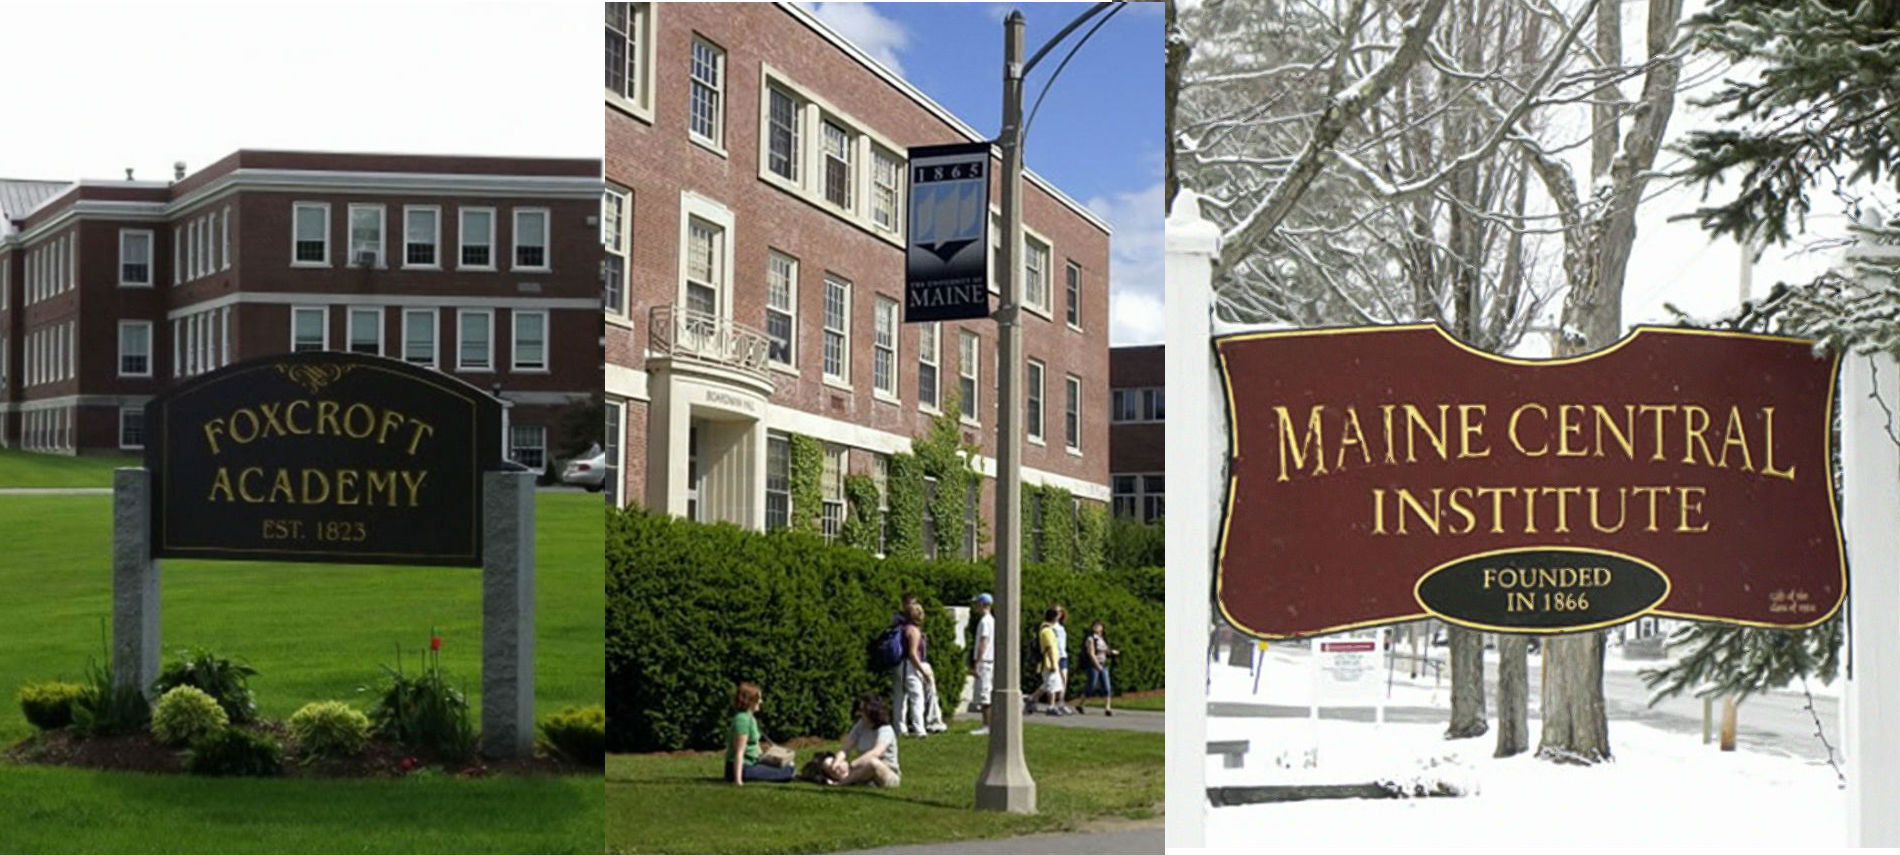 Collage of three buildings with signs: Foxcroft Academy and Maine Central Institute.